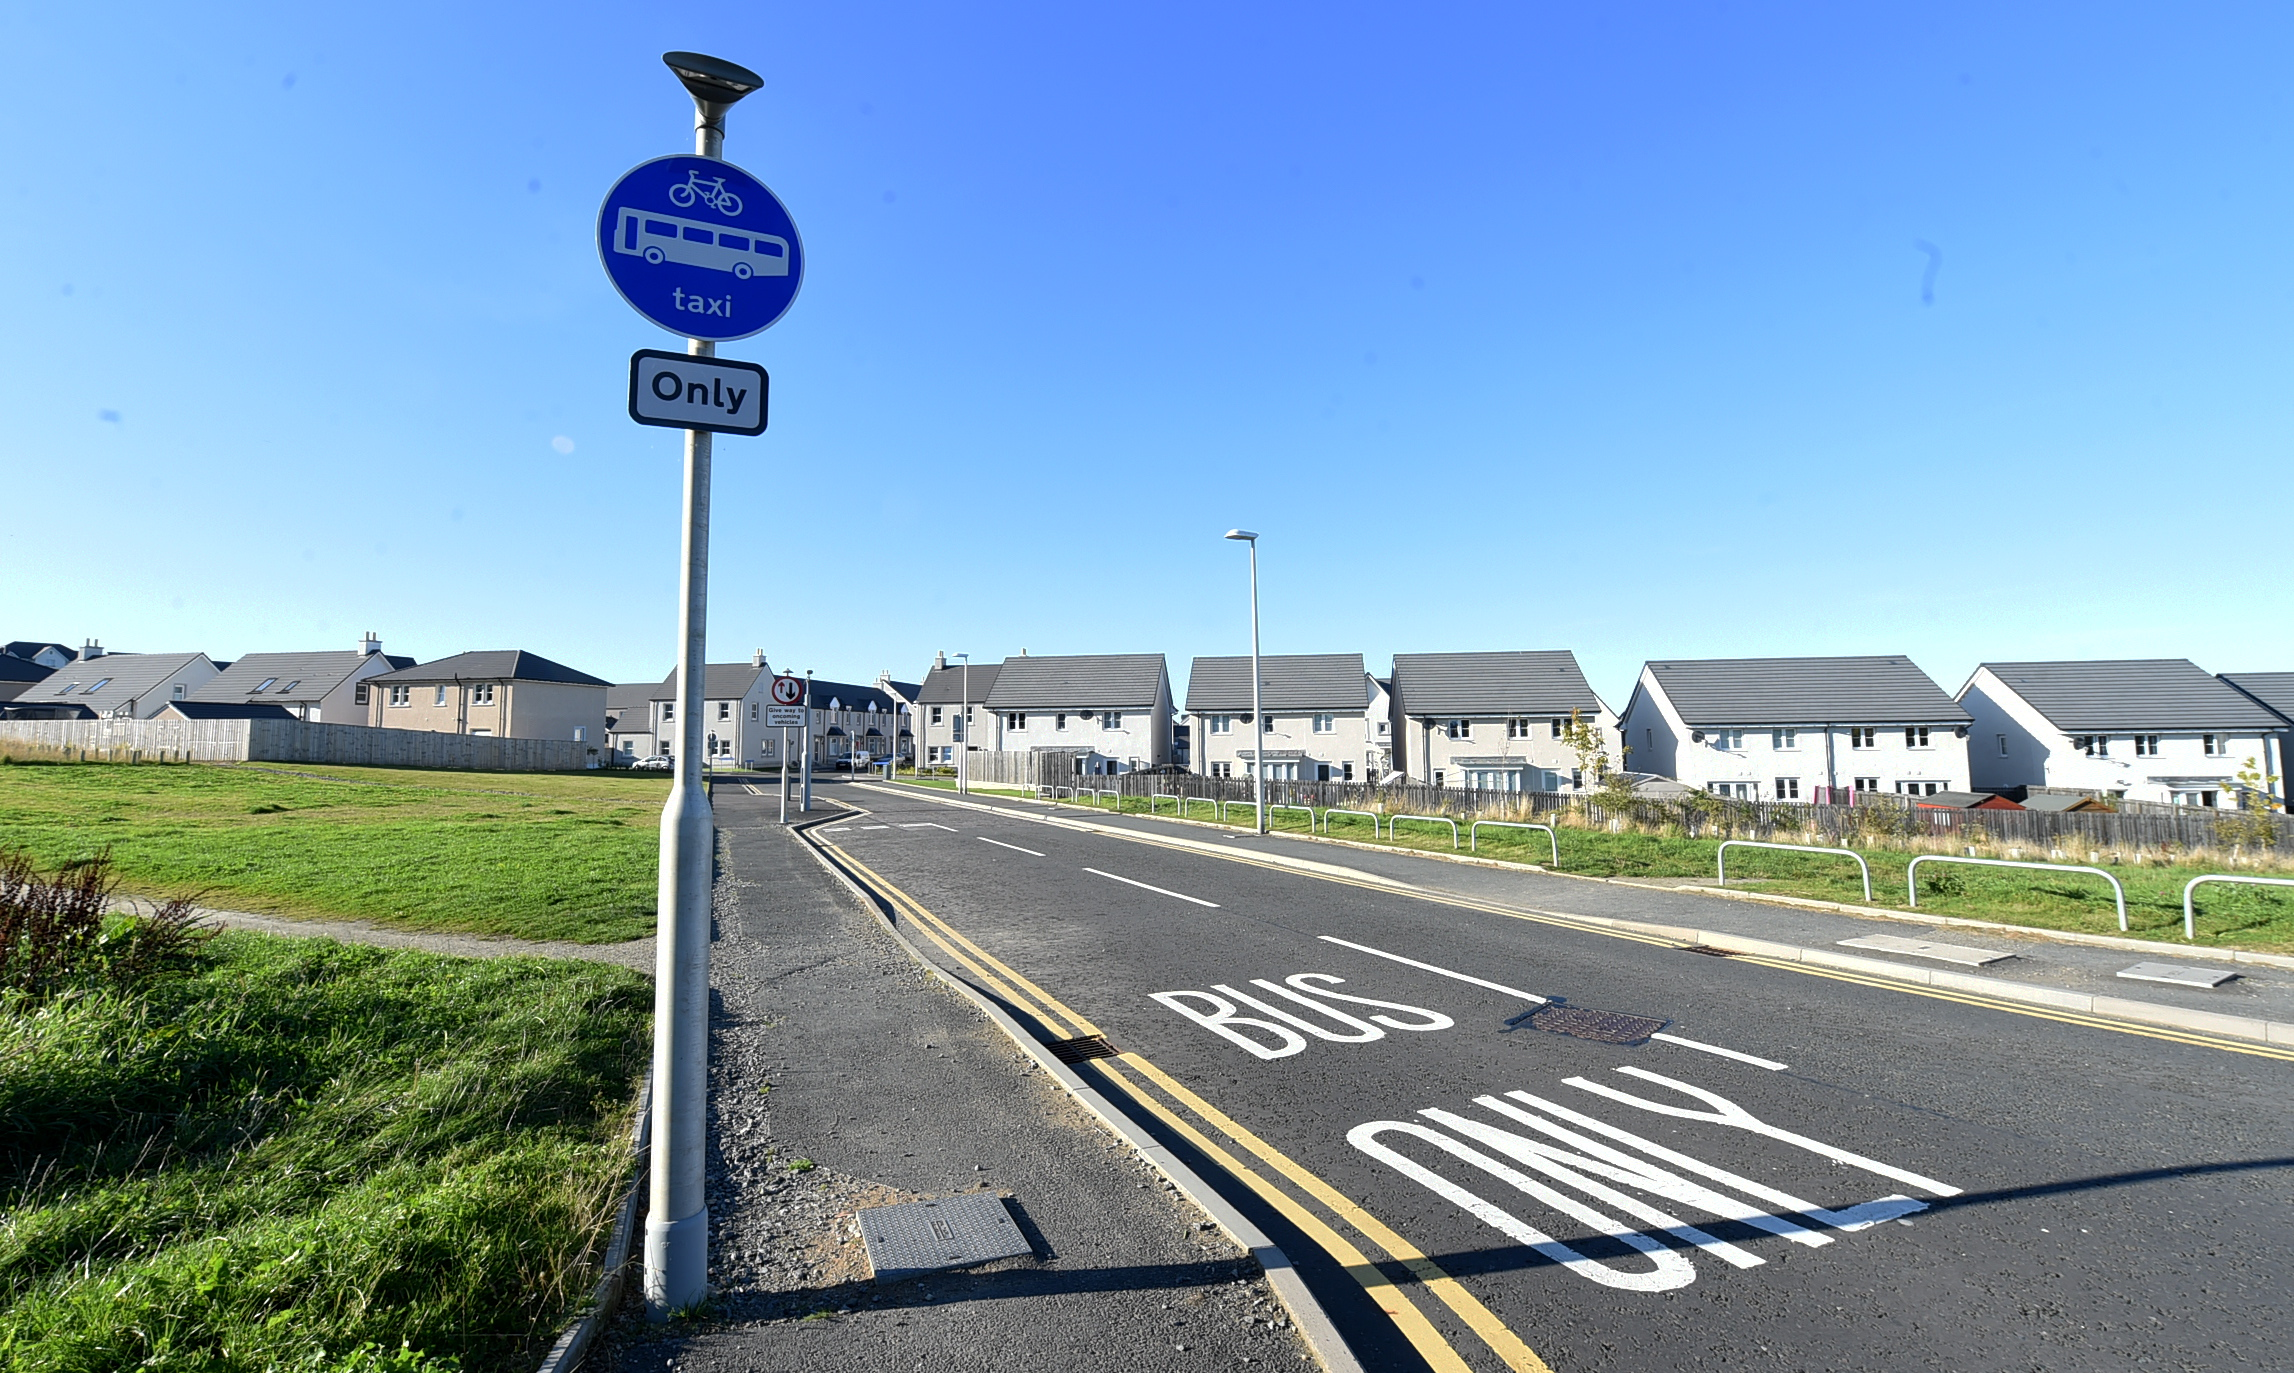 The Dubford bus gate was introduced in June 2016 to deter people from cutting through a development